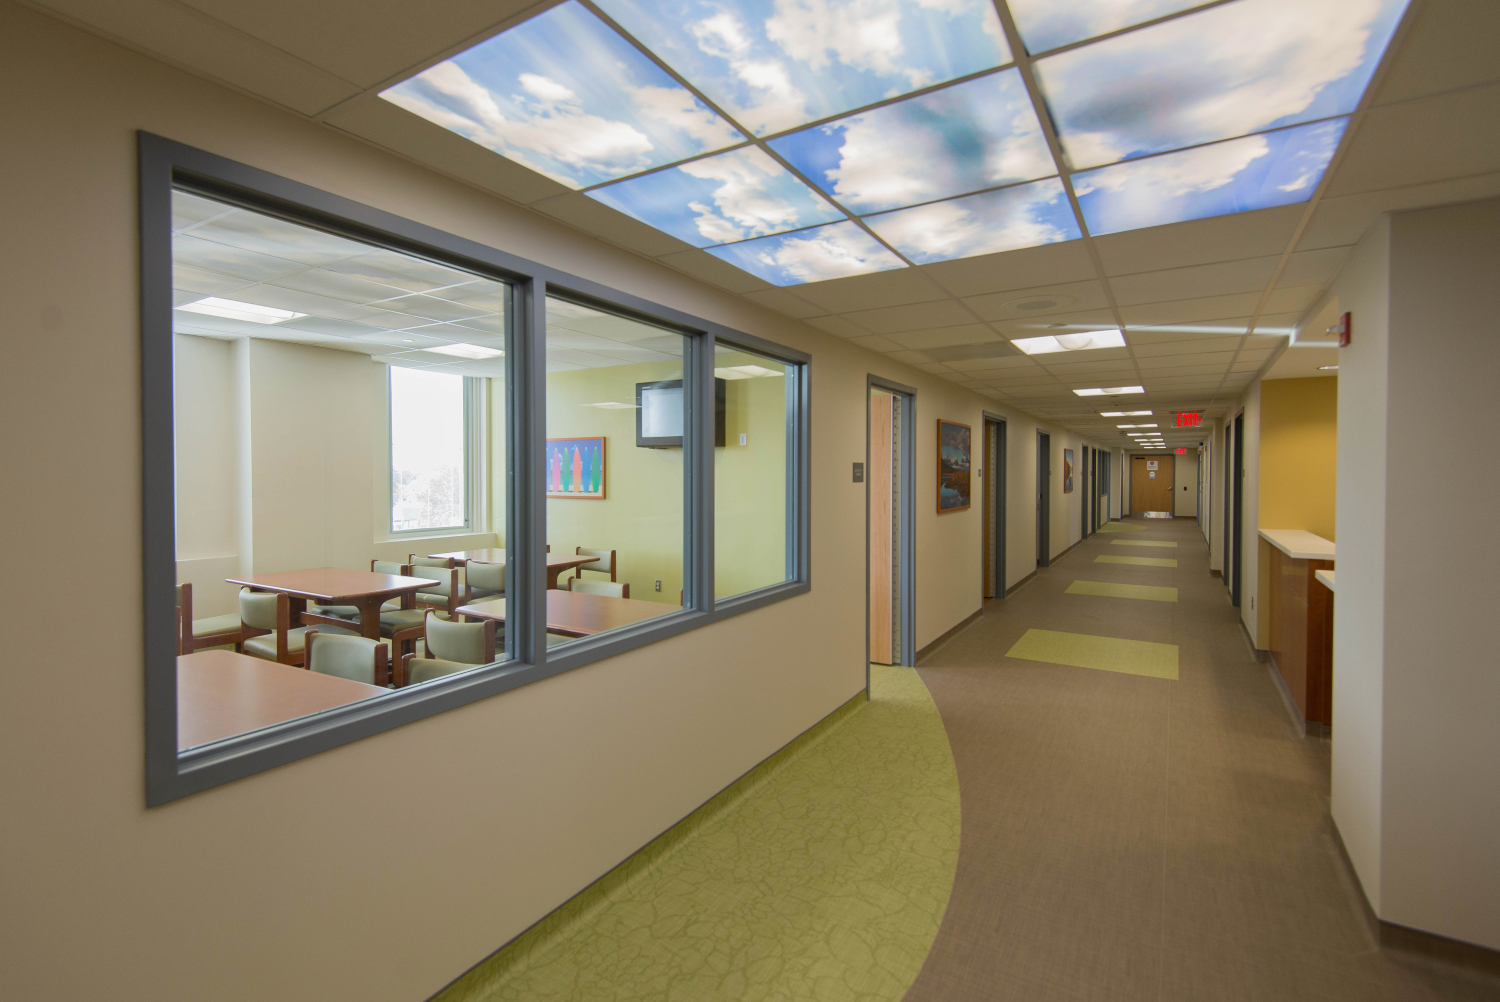 East Orange General Hospital Psychiatric Unit Renovation